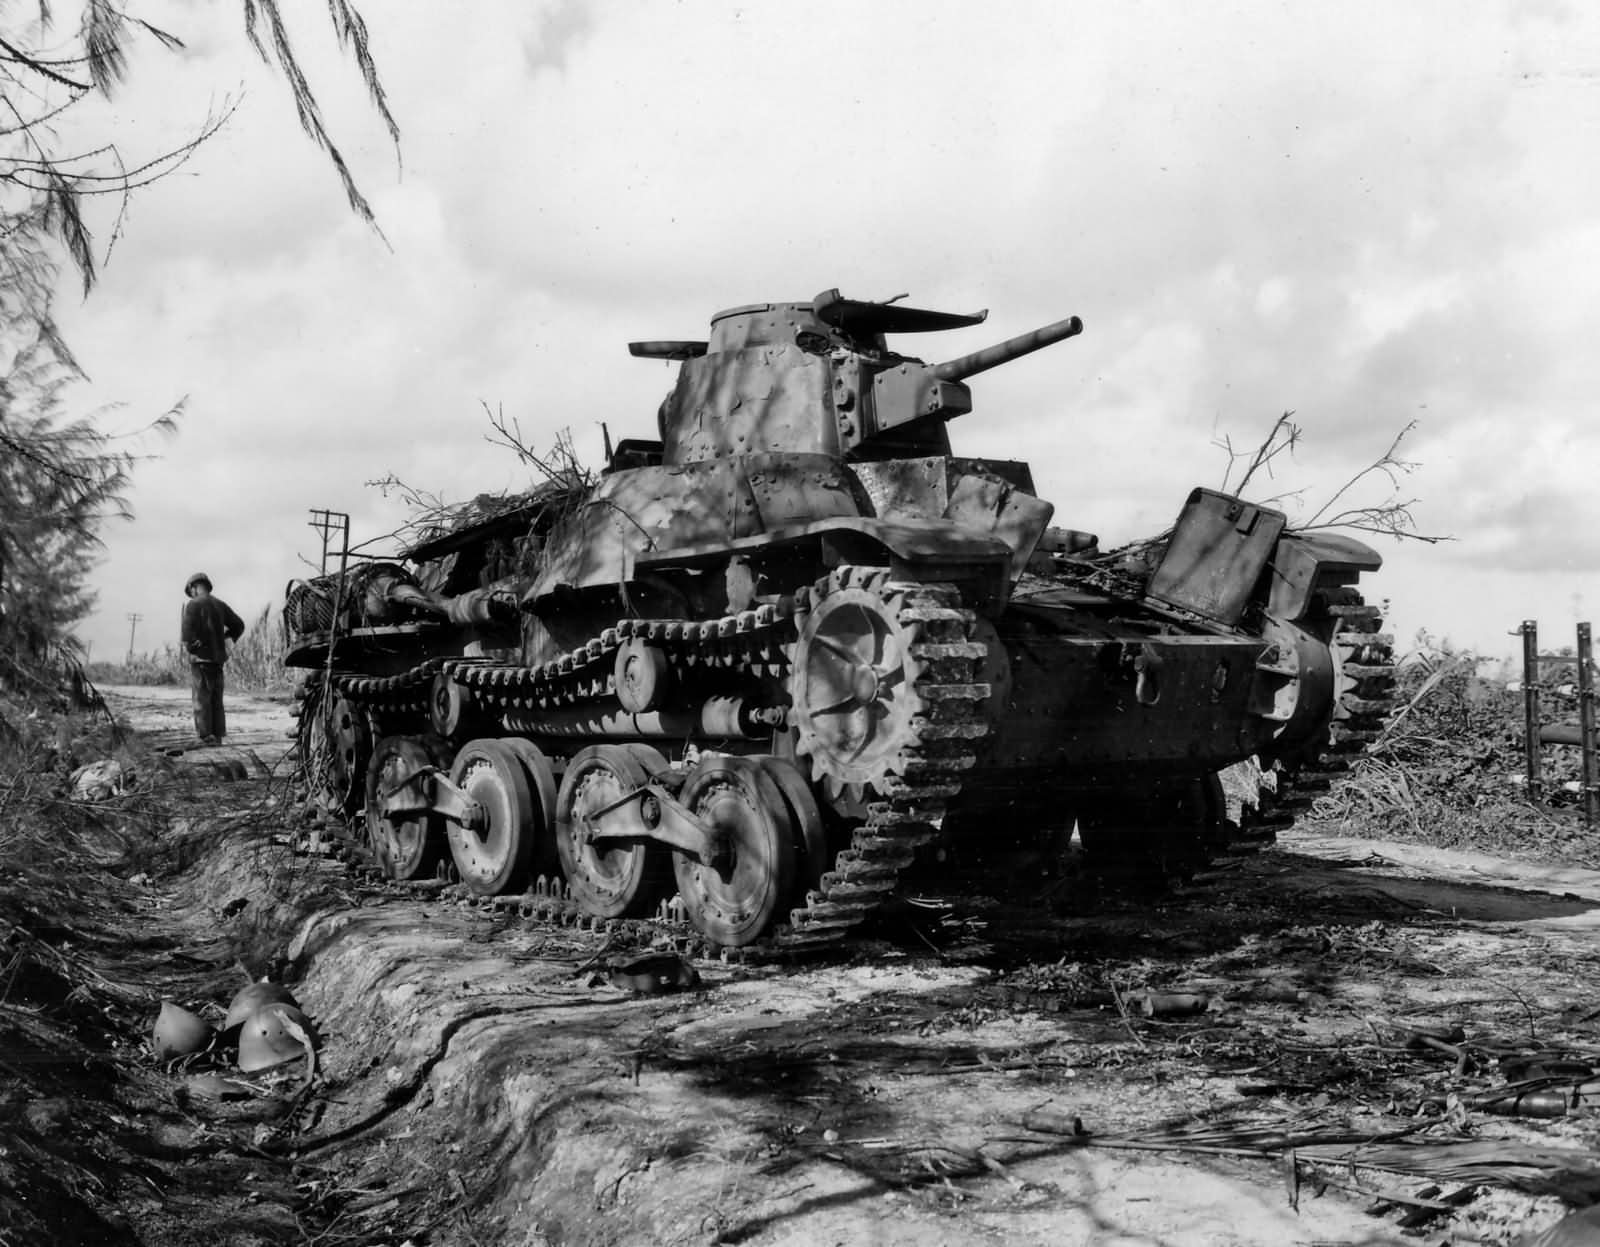 Japanese 9th Tank Regiment Type 95 Ha-Go destroyed on Tinian Island 1944